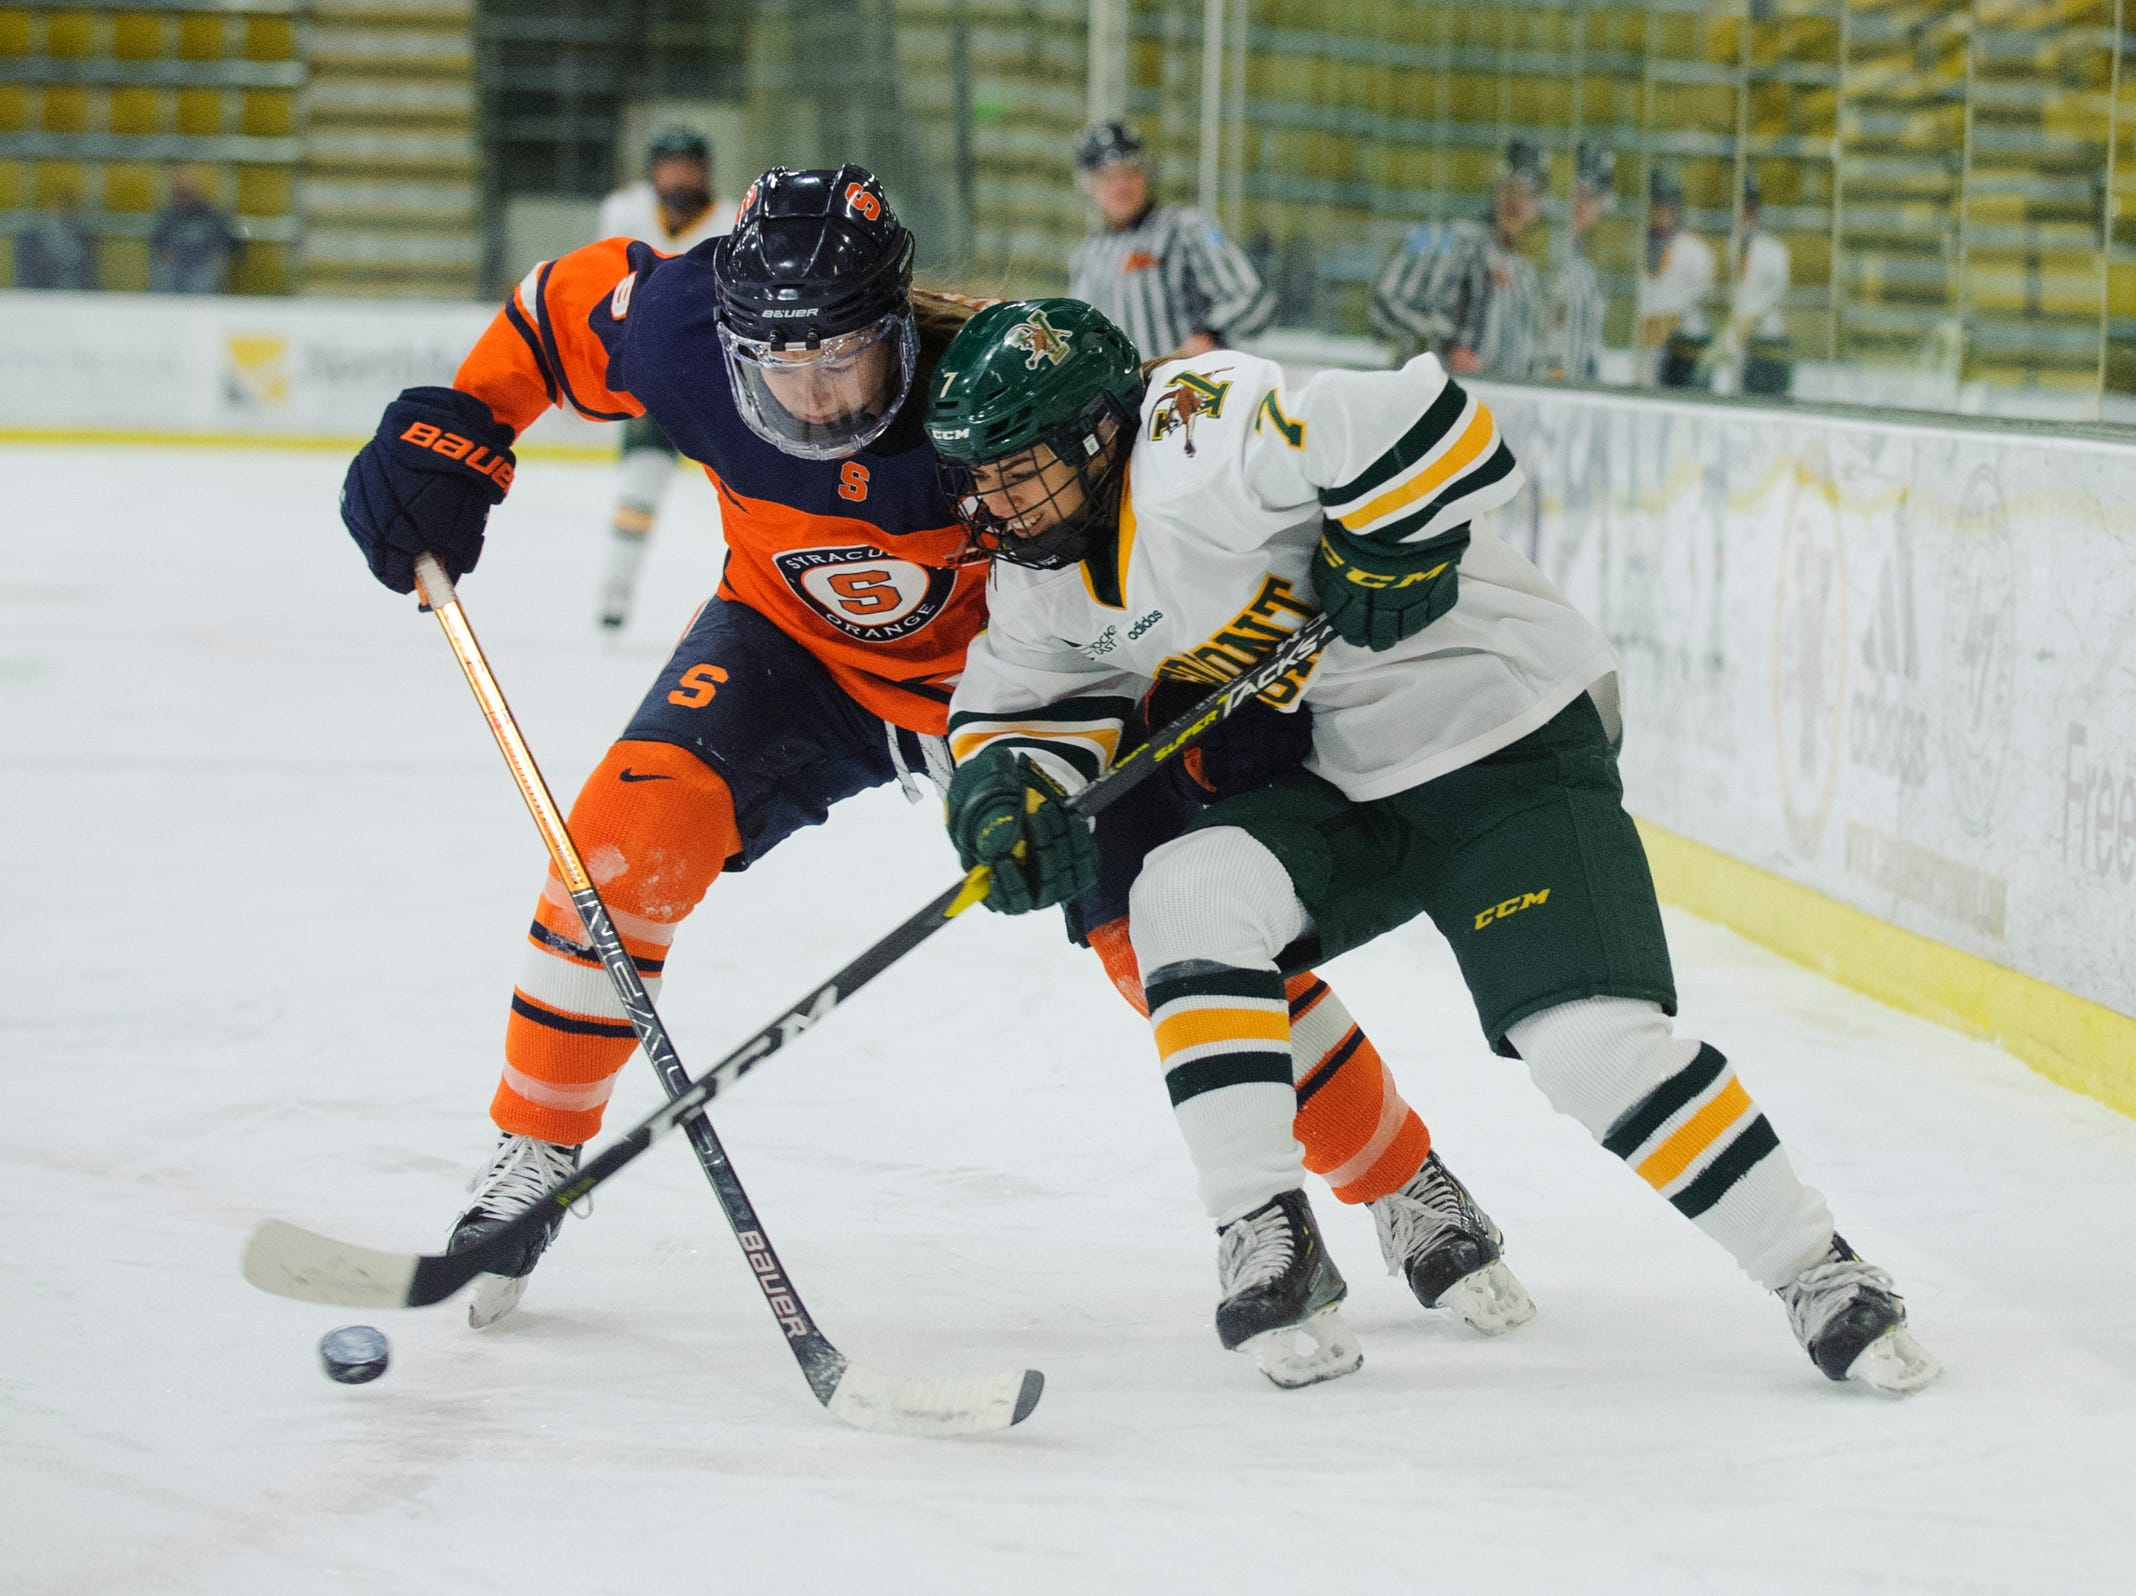 Vermont's Lristina Shanahan (7) battles for the puck with Syracuse's Lauren Bellefontaine (8) during the women's hockey game between the Syracuse Orange and the Vermont Catamounts at Gutterson Field House on Friday night November 23, 2018 in Burlington.